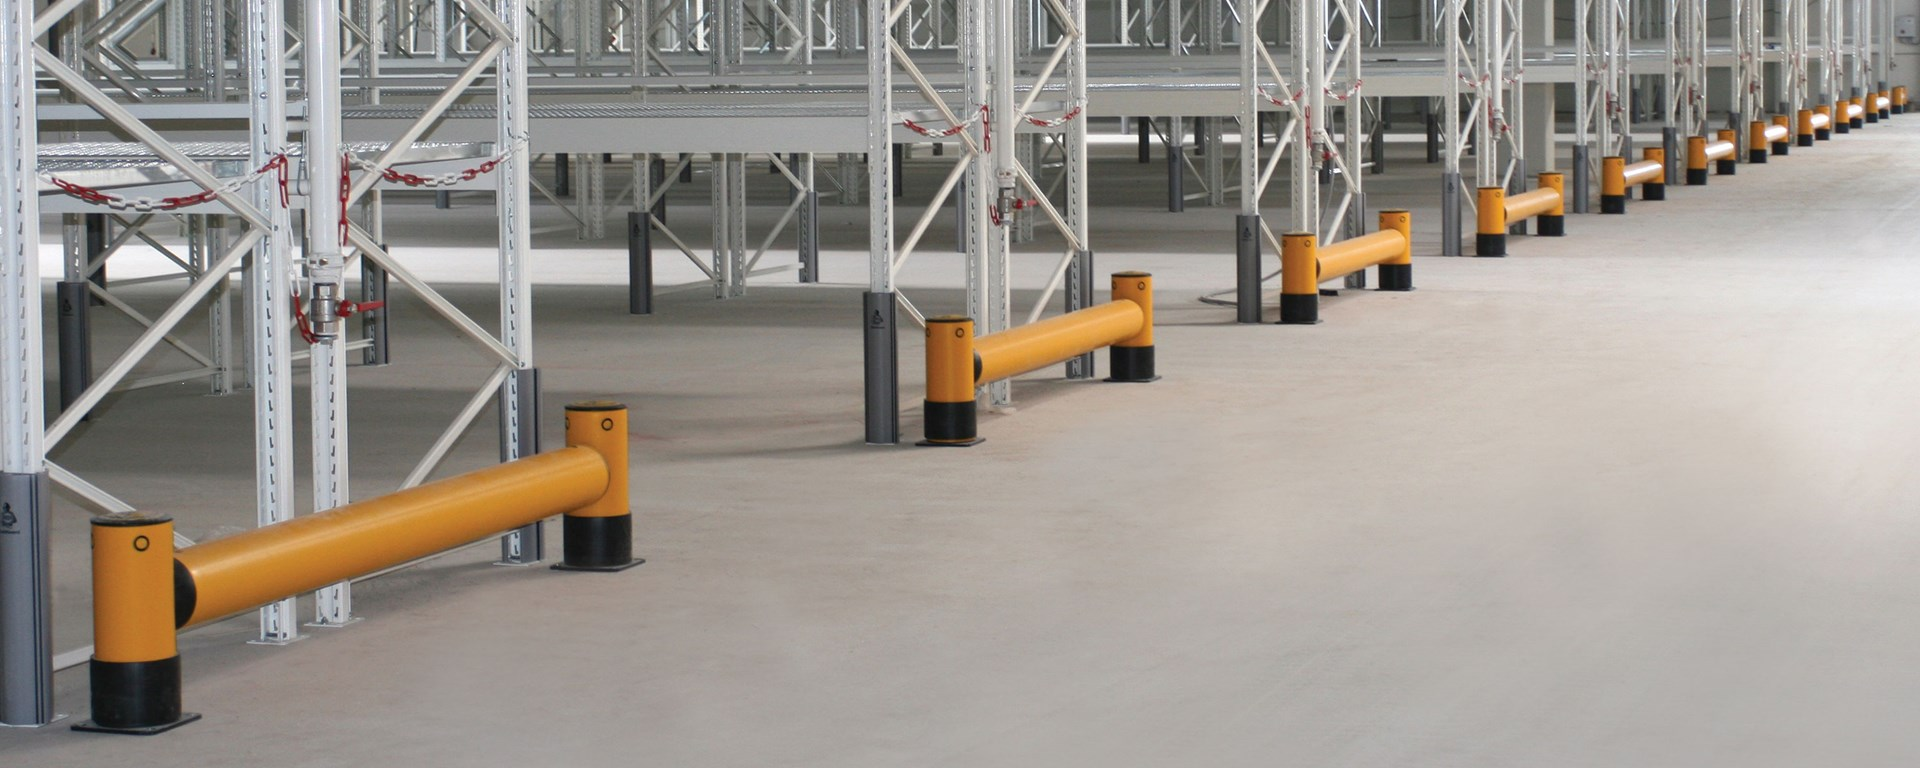 <p>Warehousing | Collision prevention solution for German Volkswagen facility</p>